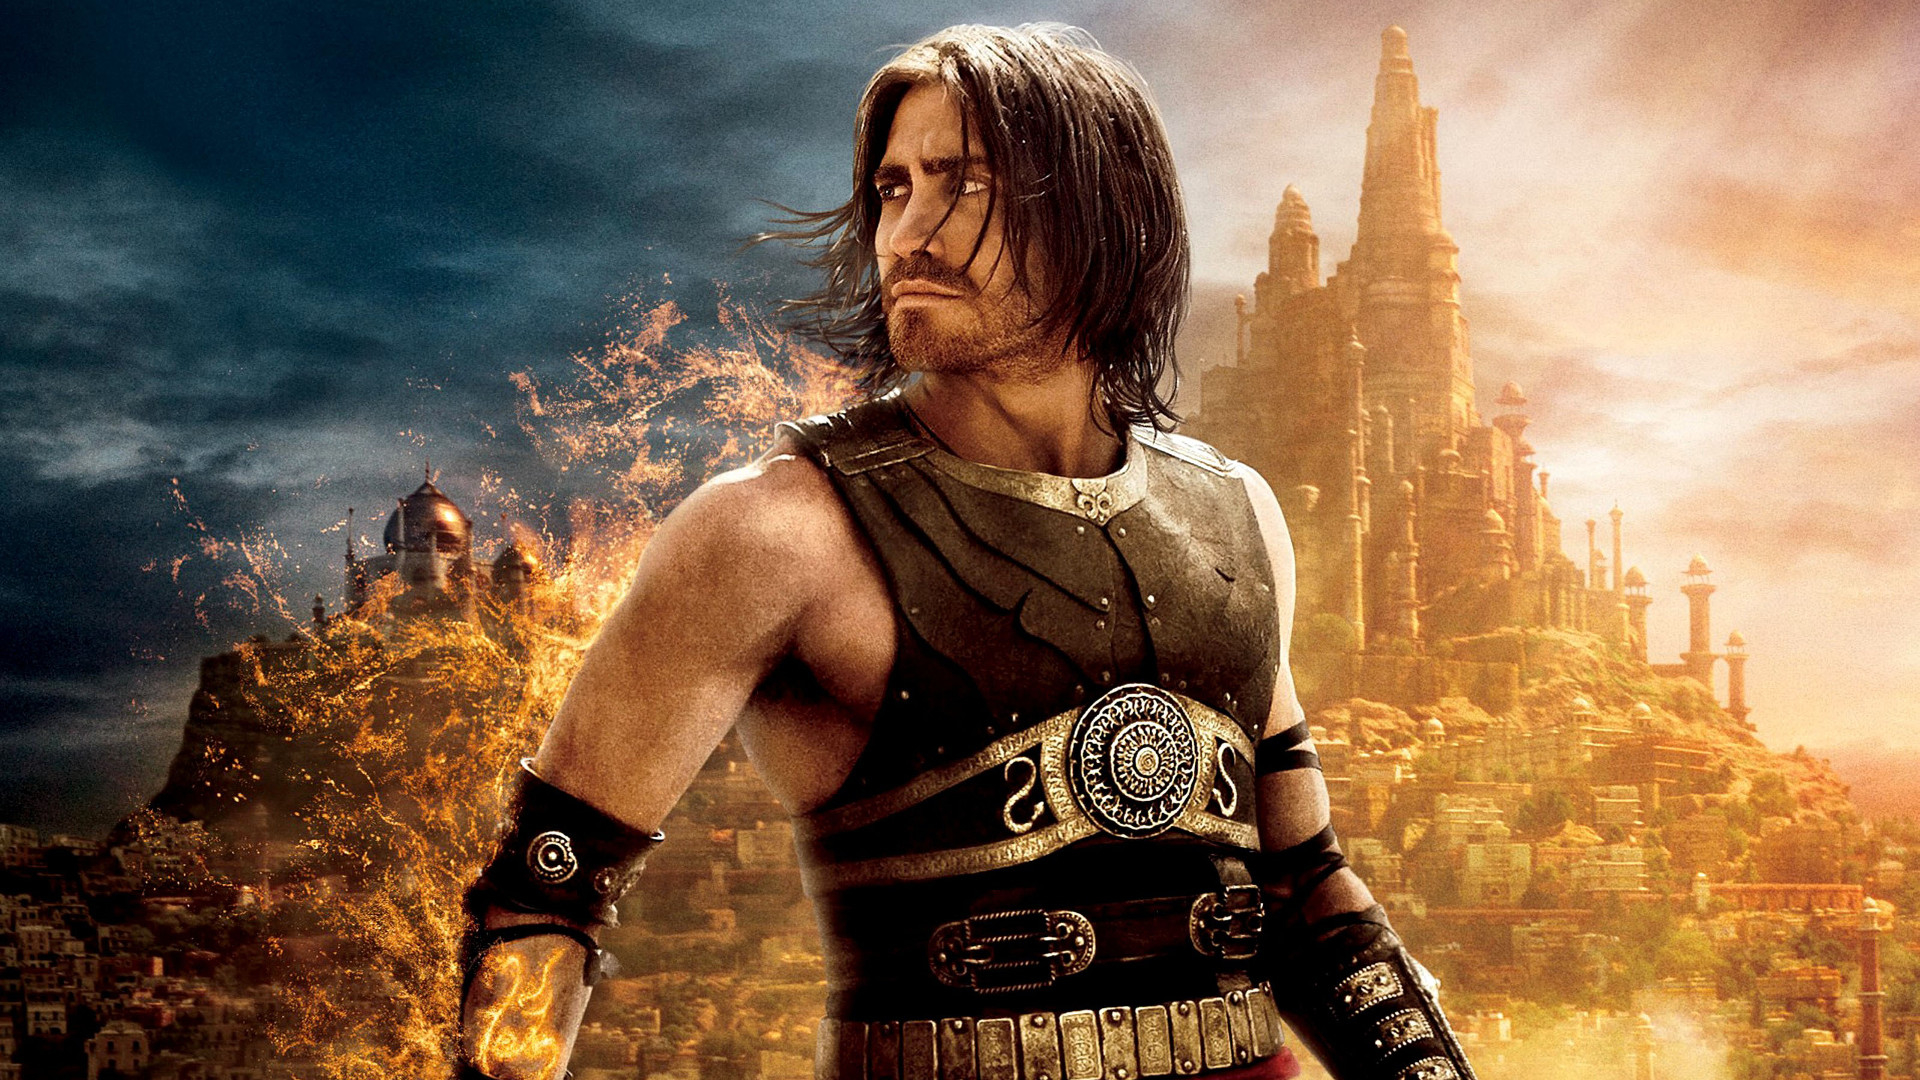 Prince Of Persia The Sands Of Time Prince Of Persia The Sands Of Time Wallpaper 41394639 Fanpop